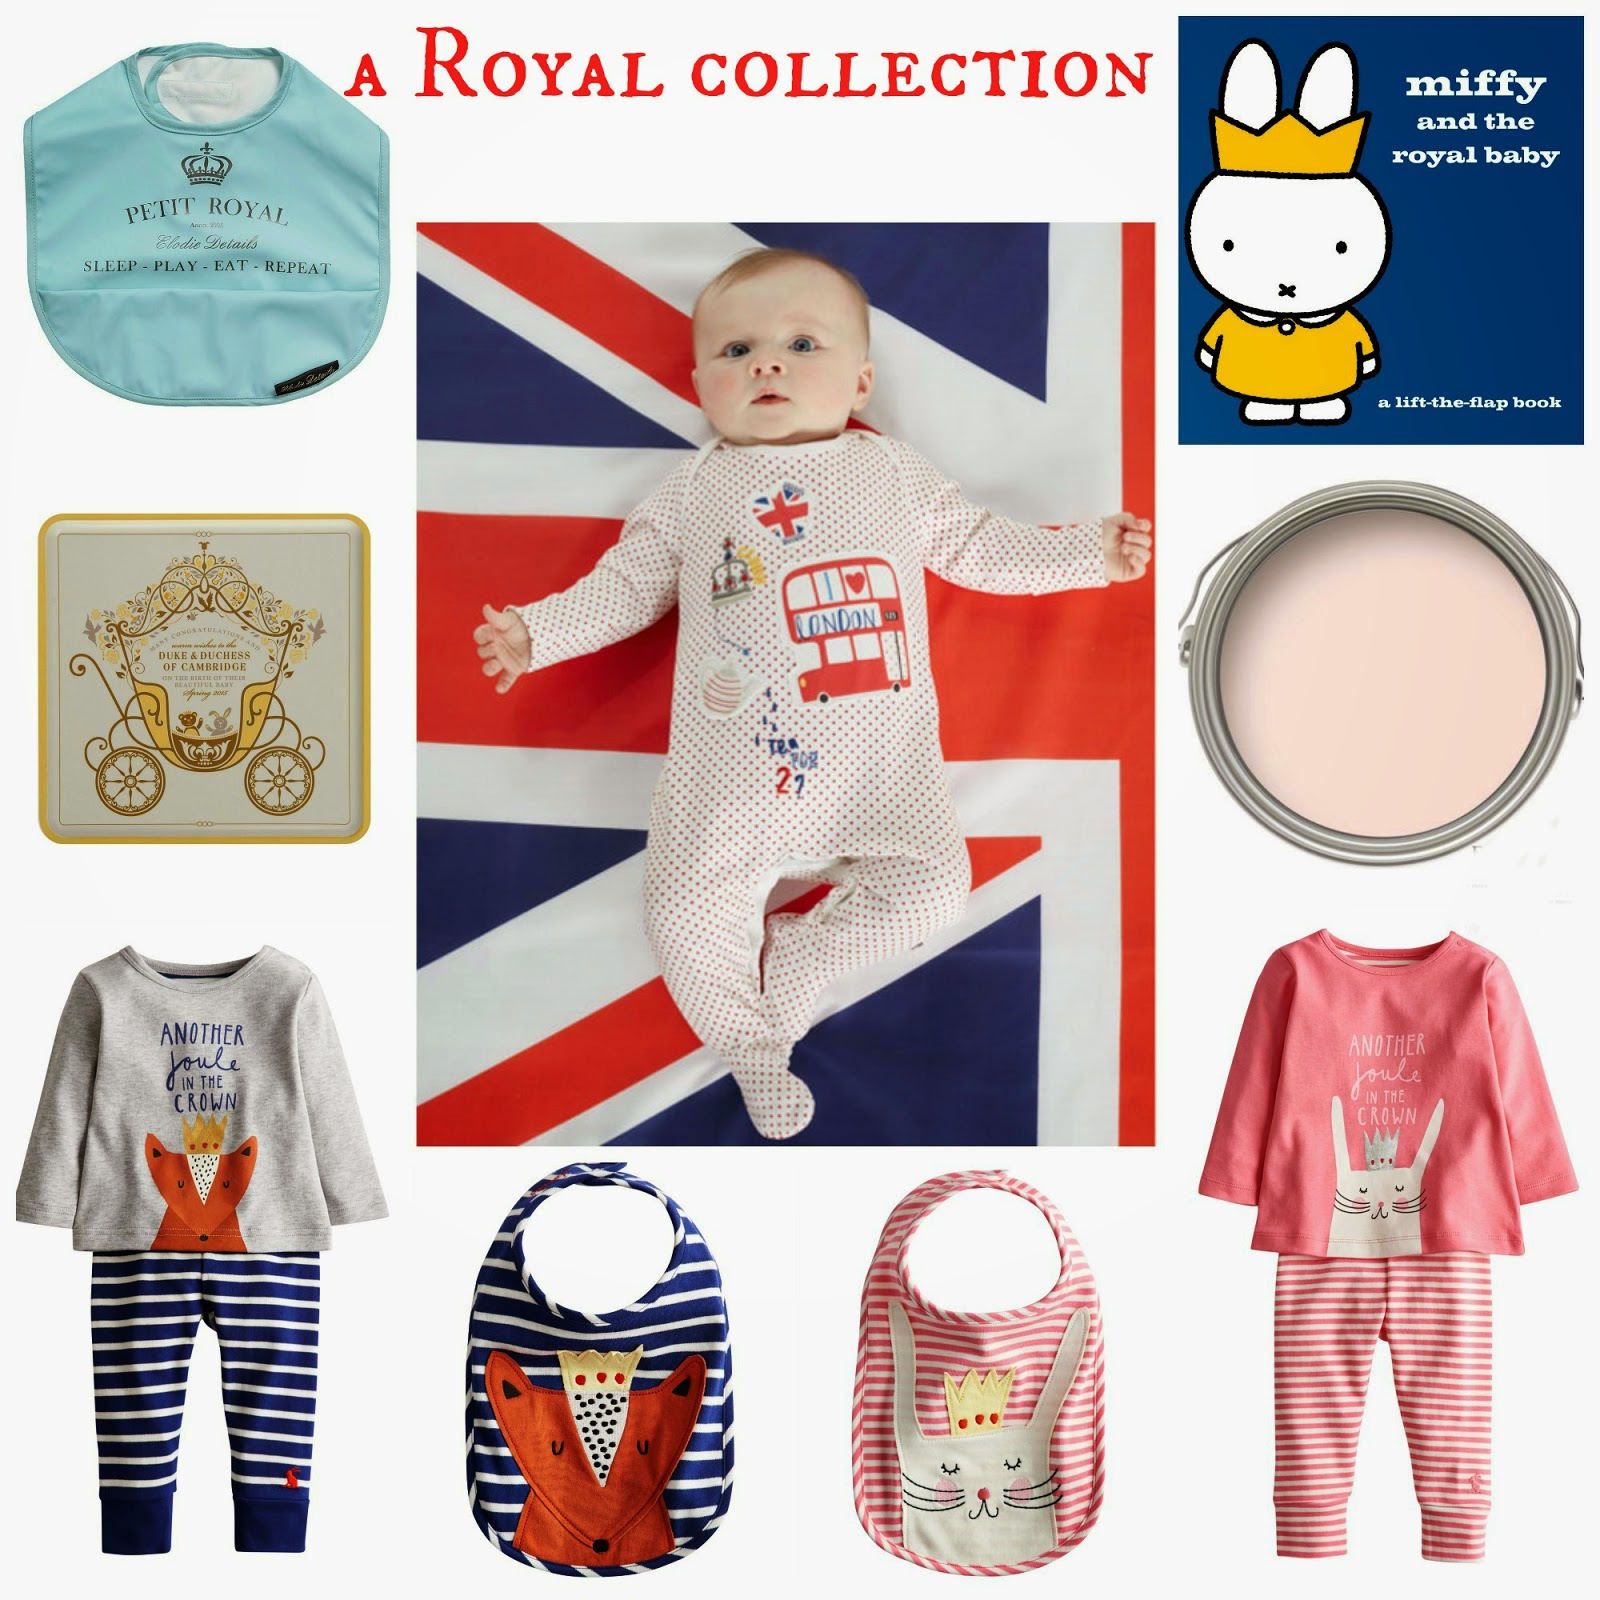 mamasVIB | V. I. BABY: Stylish ways to celebrate the arrival of the Royal Baby  | royal baby | royal | duke and duchess of cmabridge | kate middleton | prince george | new baby | royal baby | marsk and spencer | limited edition biscuit tin | miff and the royal baby | joules royal baby clothes | children salon | new royal birth | george | baby boy | baby girl | princess | kate | willima | prince william | pregnancy | royal news | stylish buys | shopping | mamasVIB